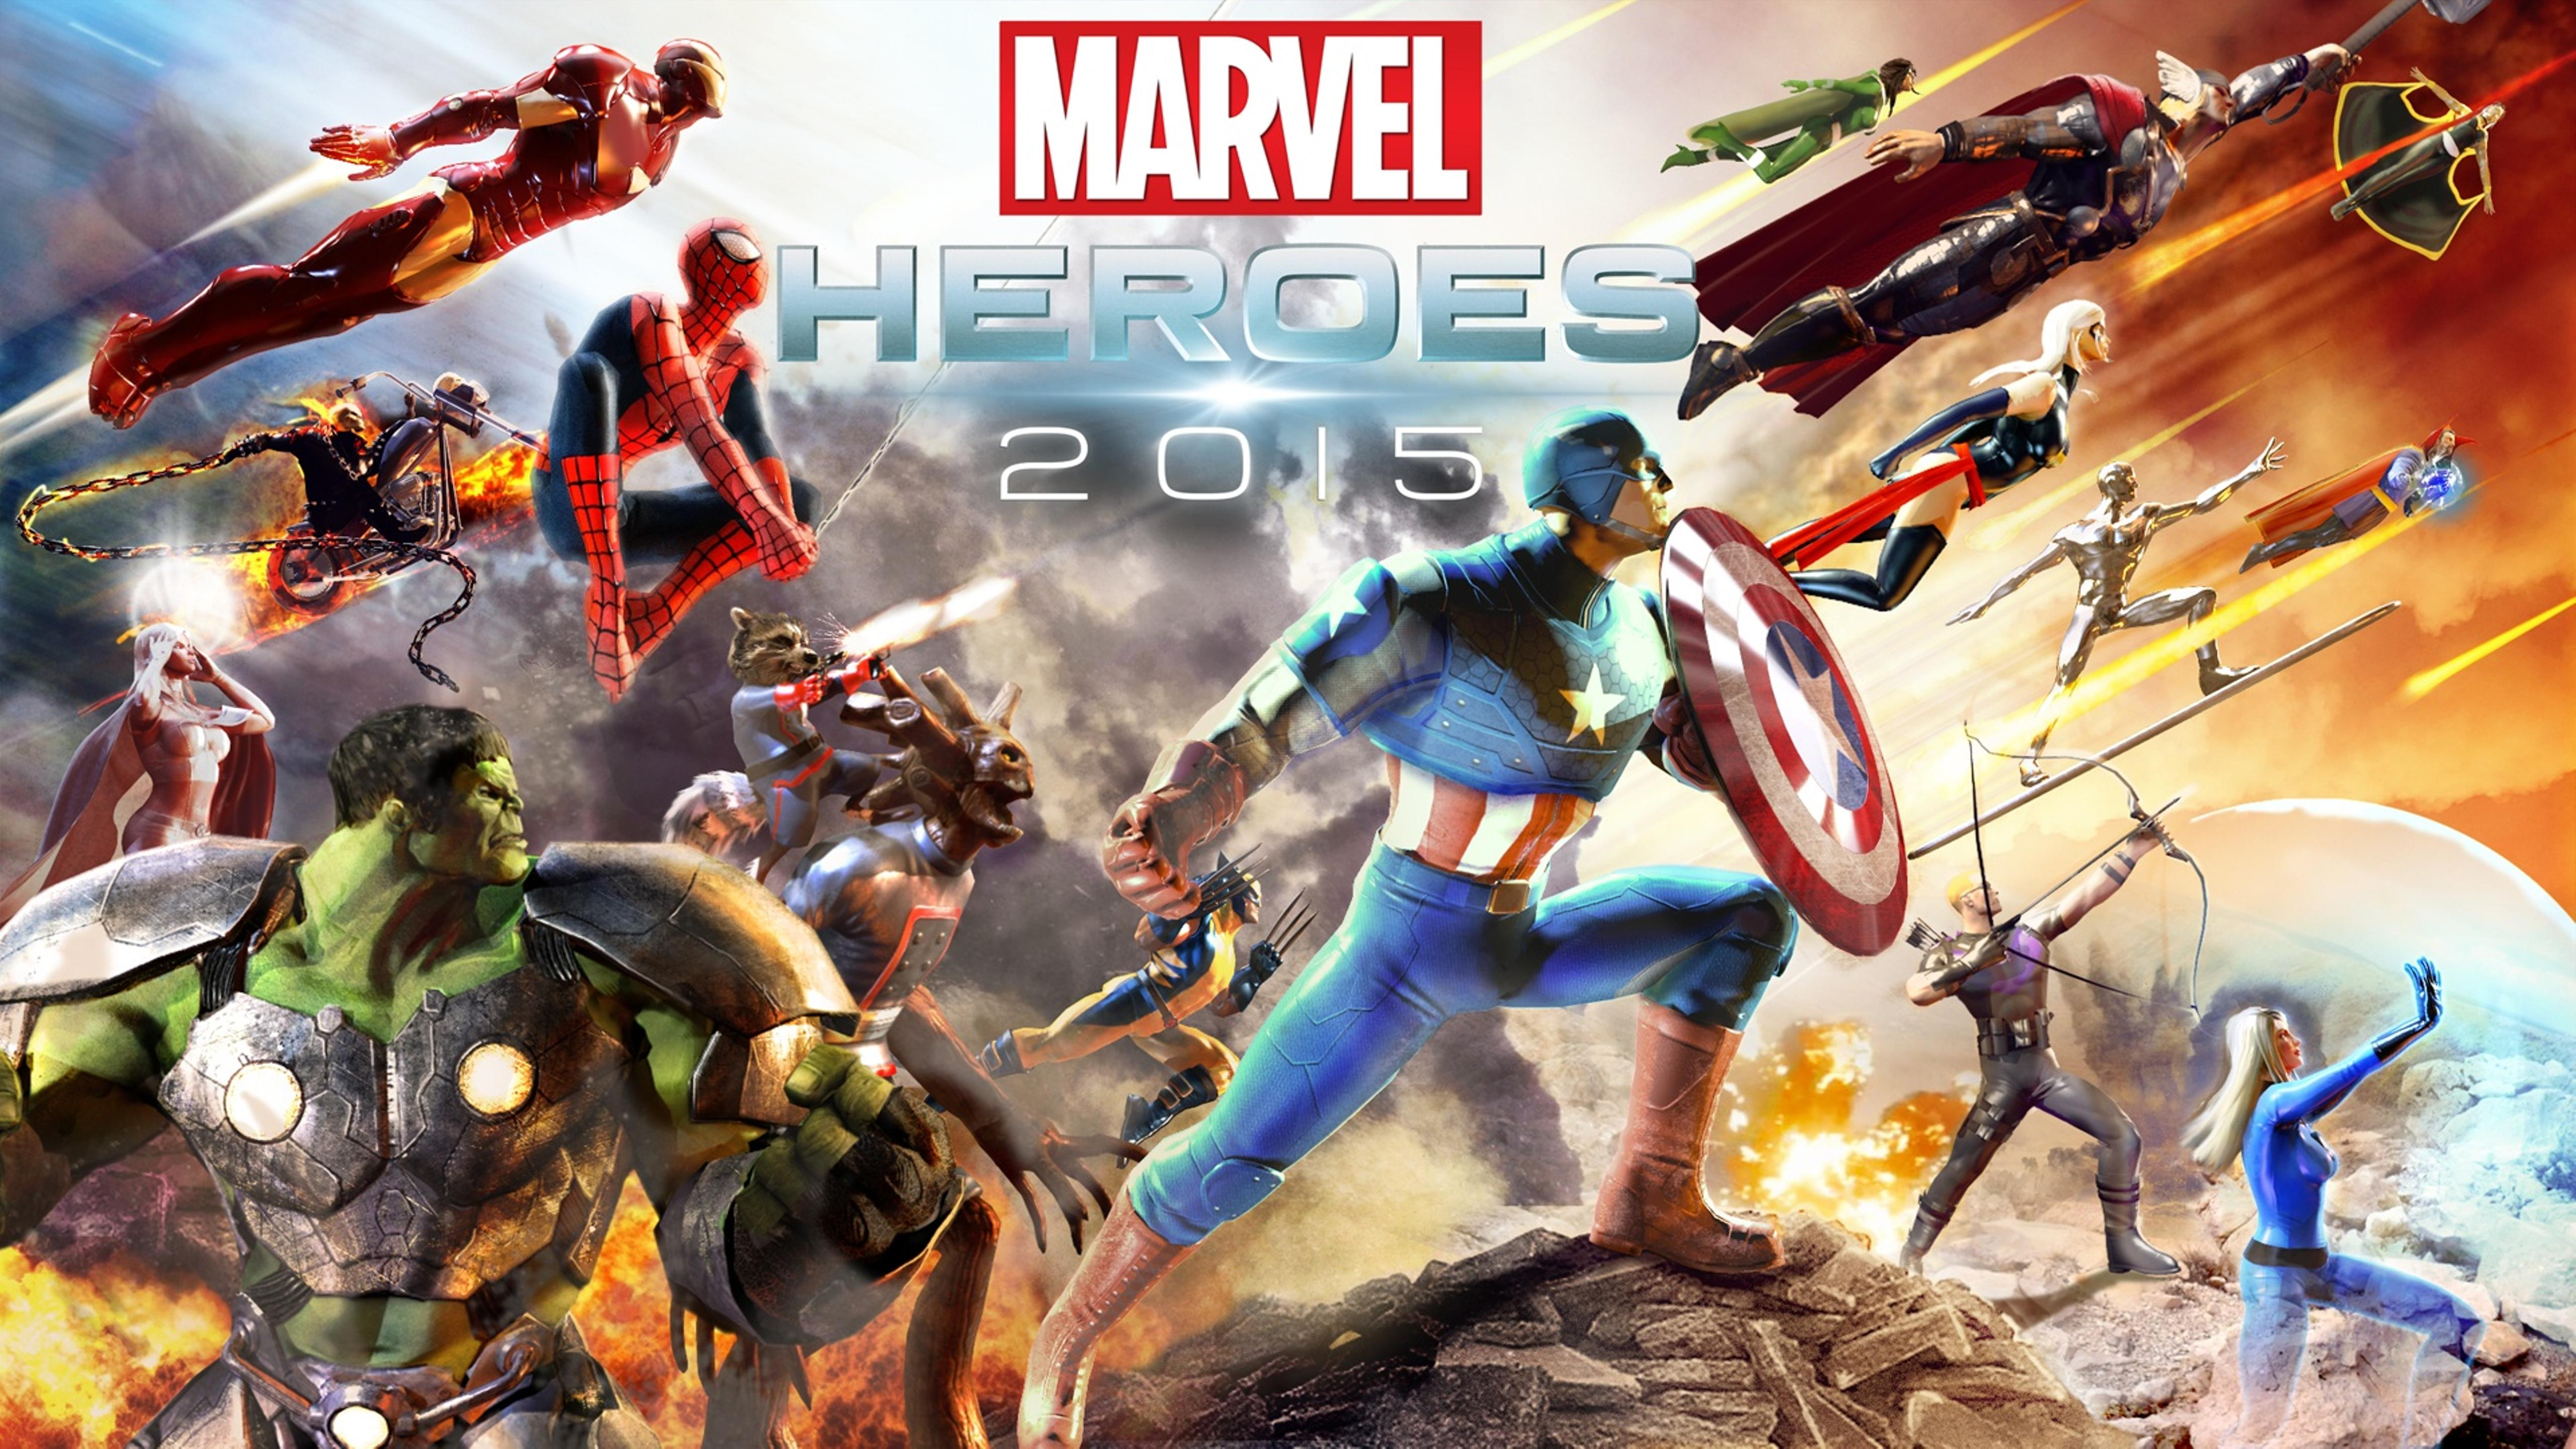 Beautiful Poster With 2015 Heroes Hd Wallpaper Wallpaper